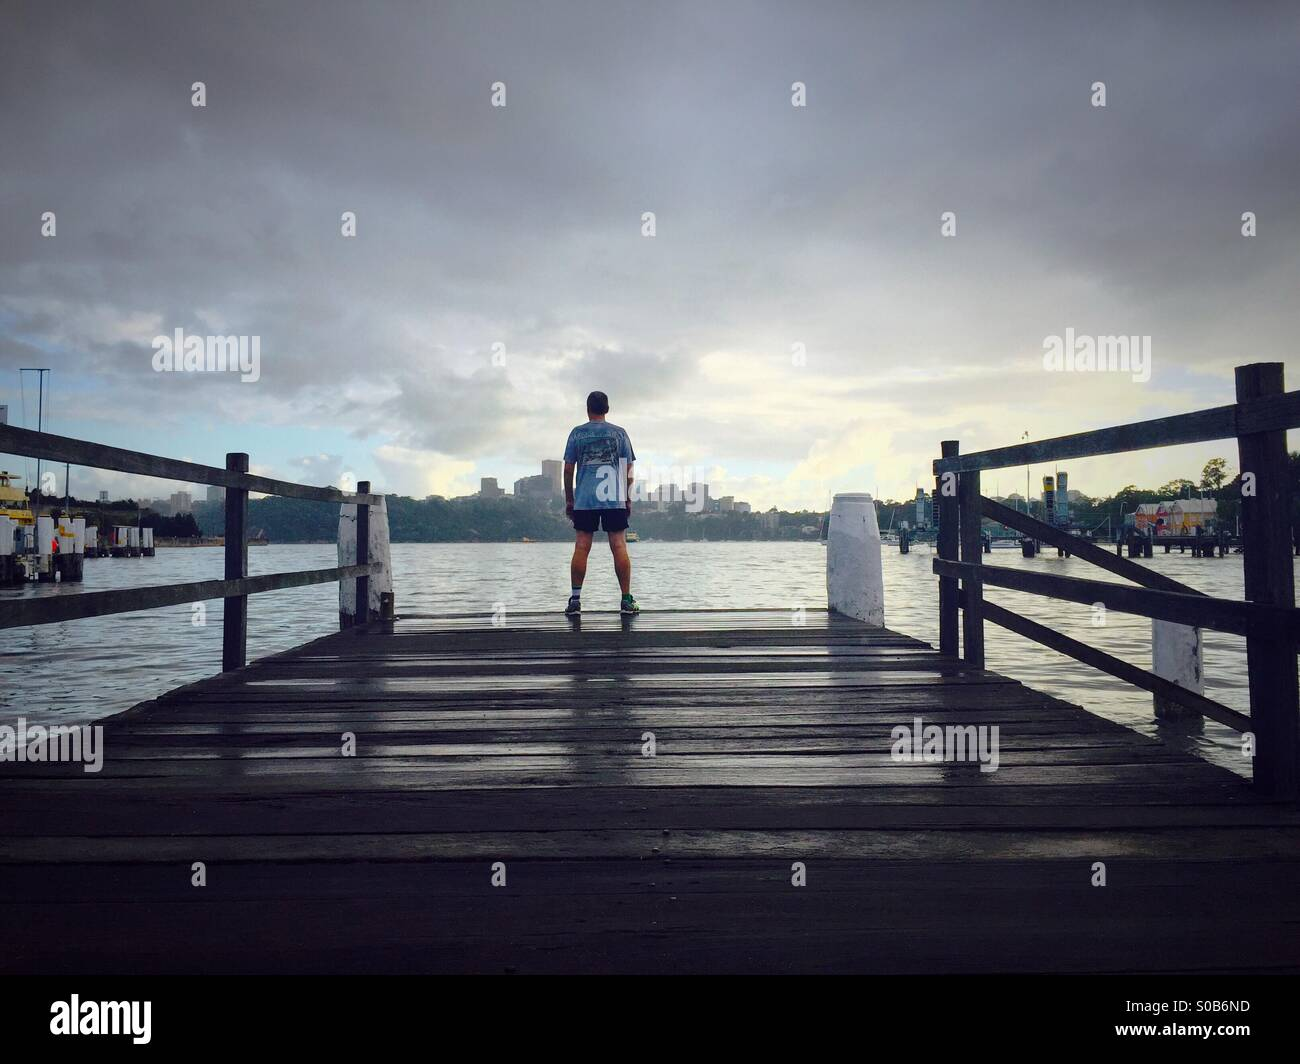 A man in running gear looks out over water - Stock Image